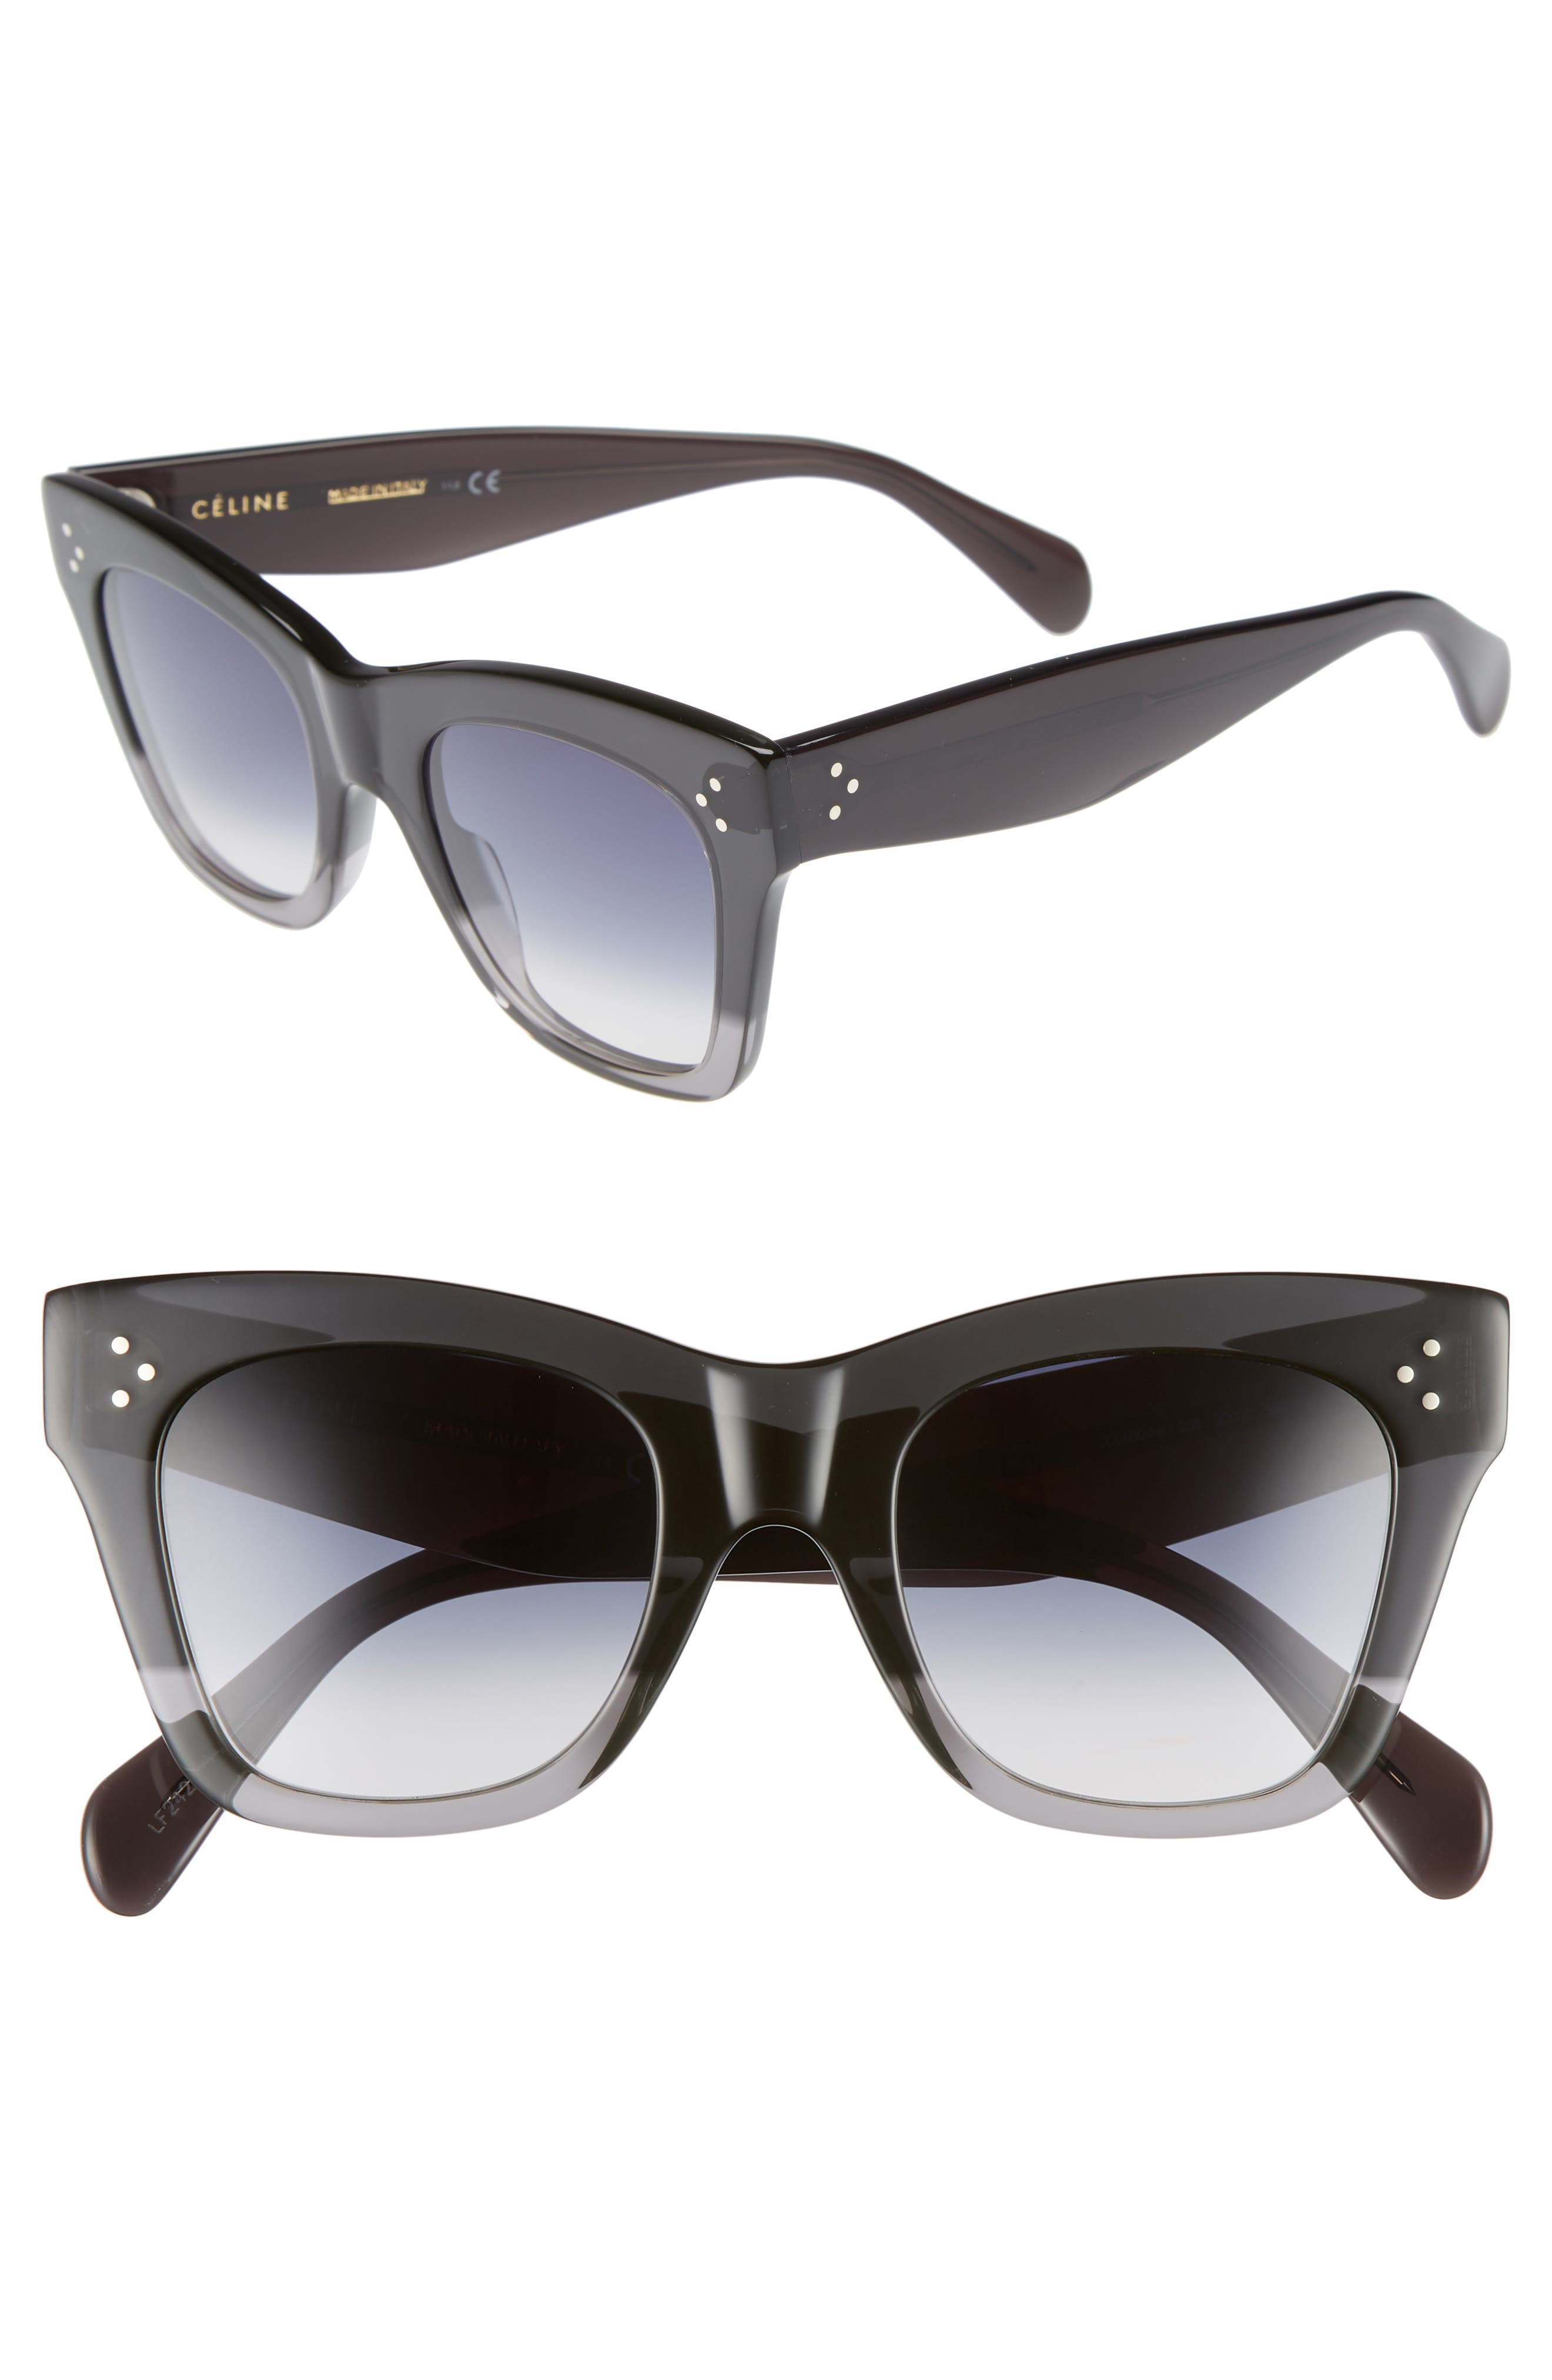 Celine 50Mm Gradient Butterfly Sunglasses - Dark Grey/ Smoke